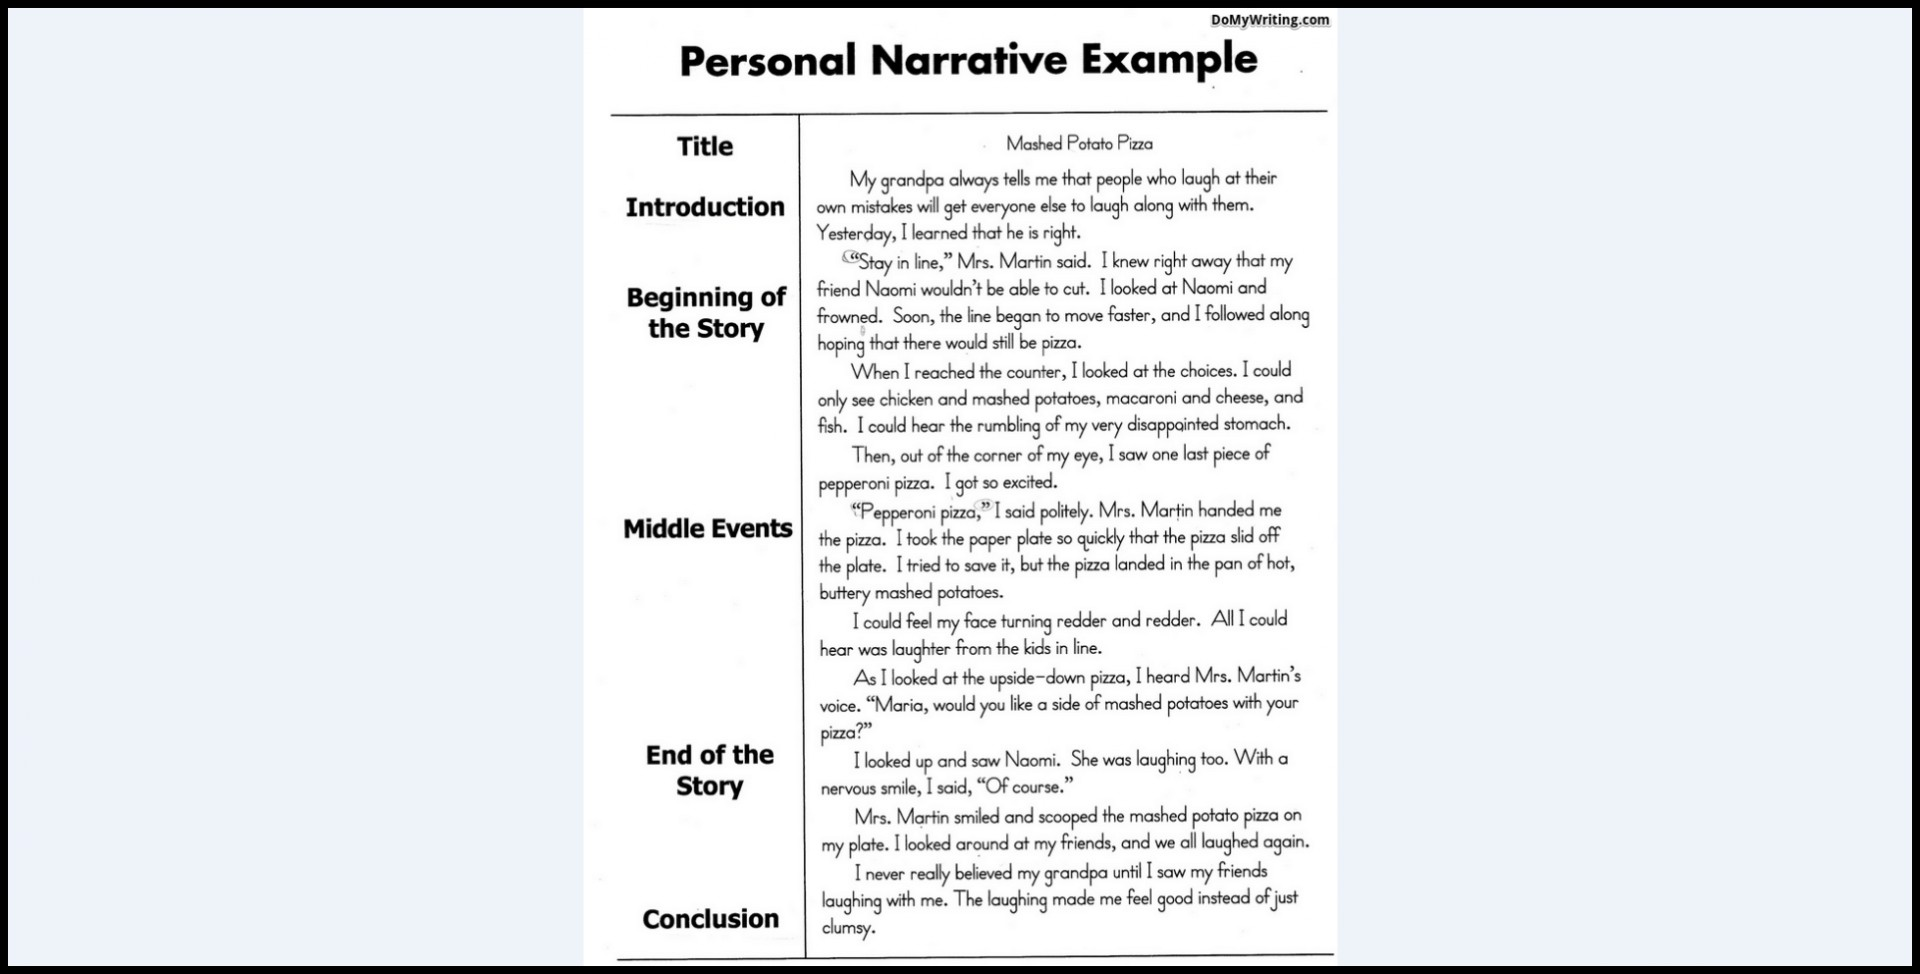 009 Example Narrative Archaicawful Essay Childhood Memory Losing Loved One Excellent Spm 1920